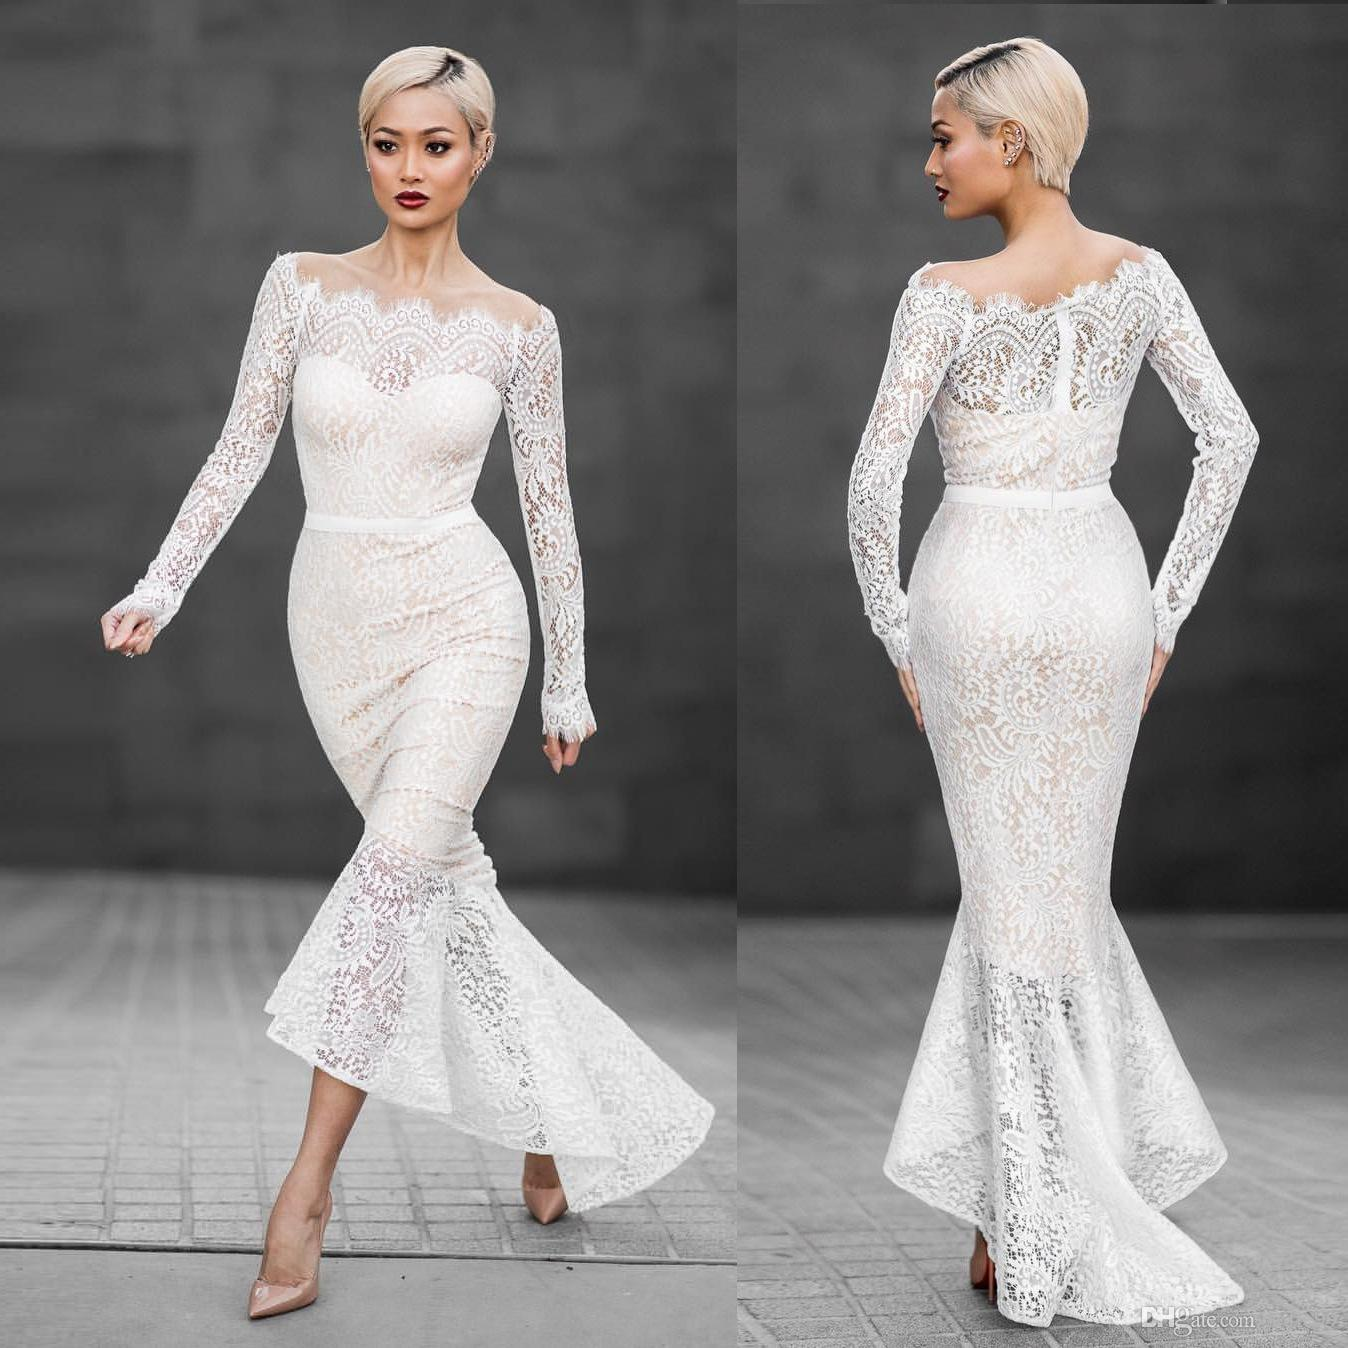 377a7dfe1c1 Off Shoulder White Lace Dress Women Long Sleeve Slash Neck Fishtail Elegant  Hollow Out Dinner Party Formal Dress Party Dresses Online with  23.95 Piece  on ...